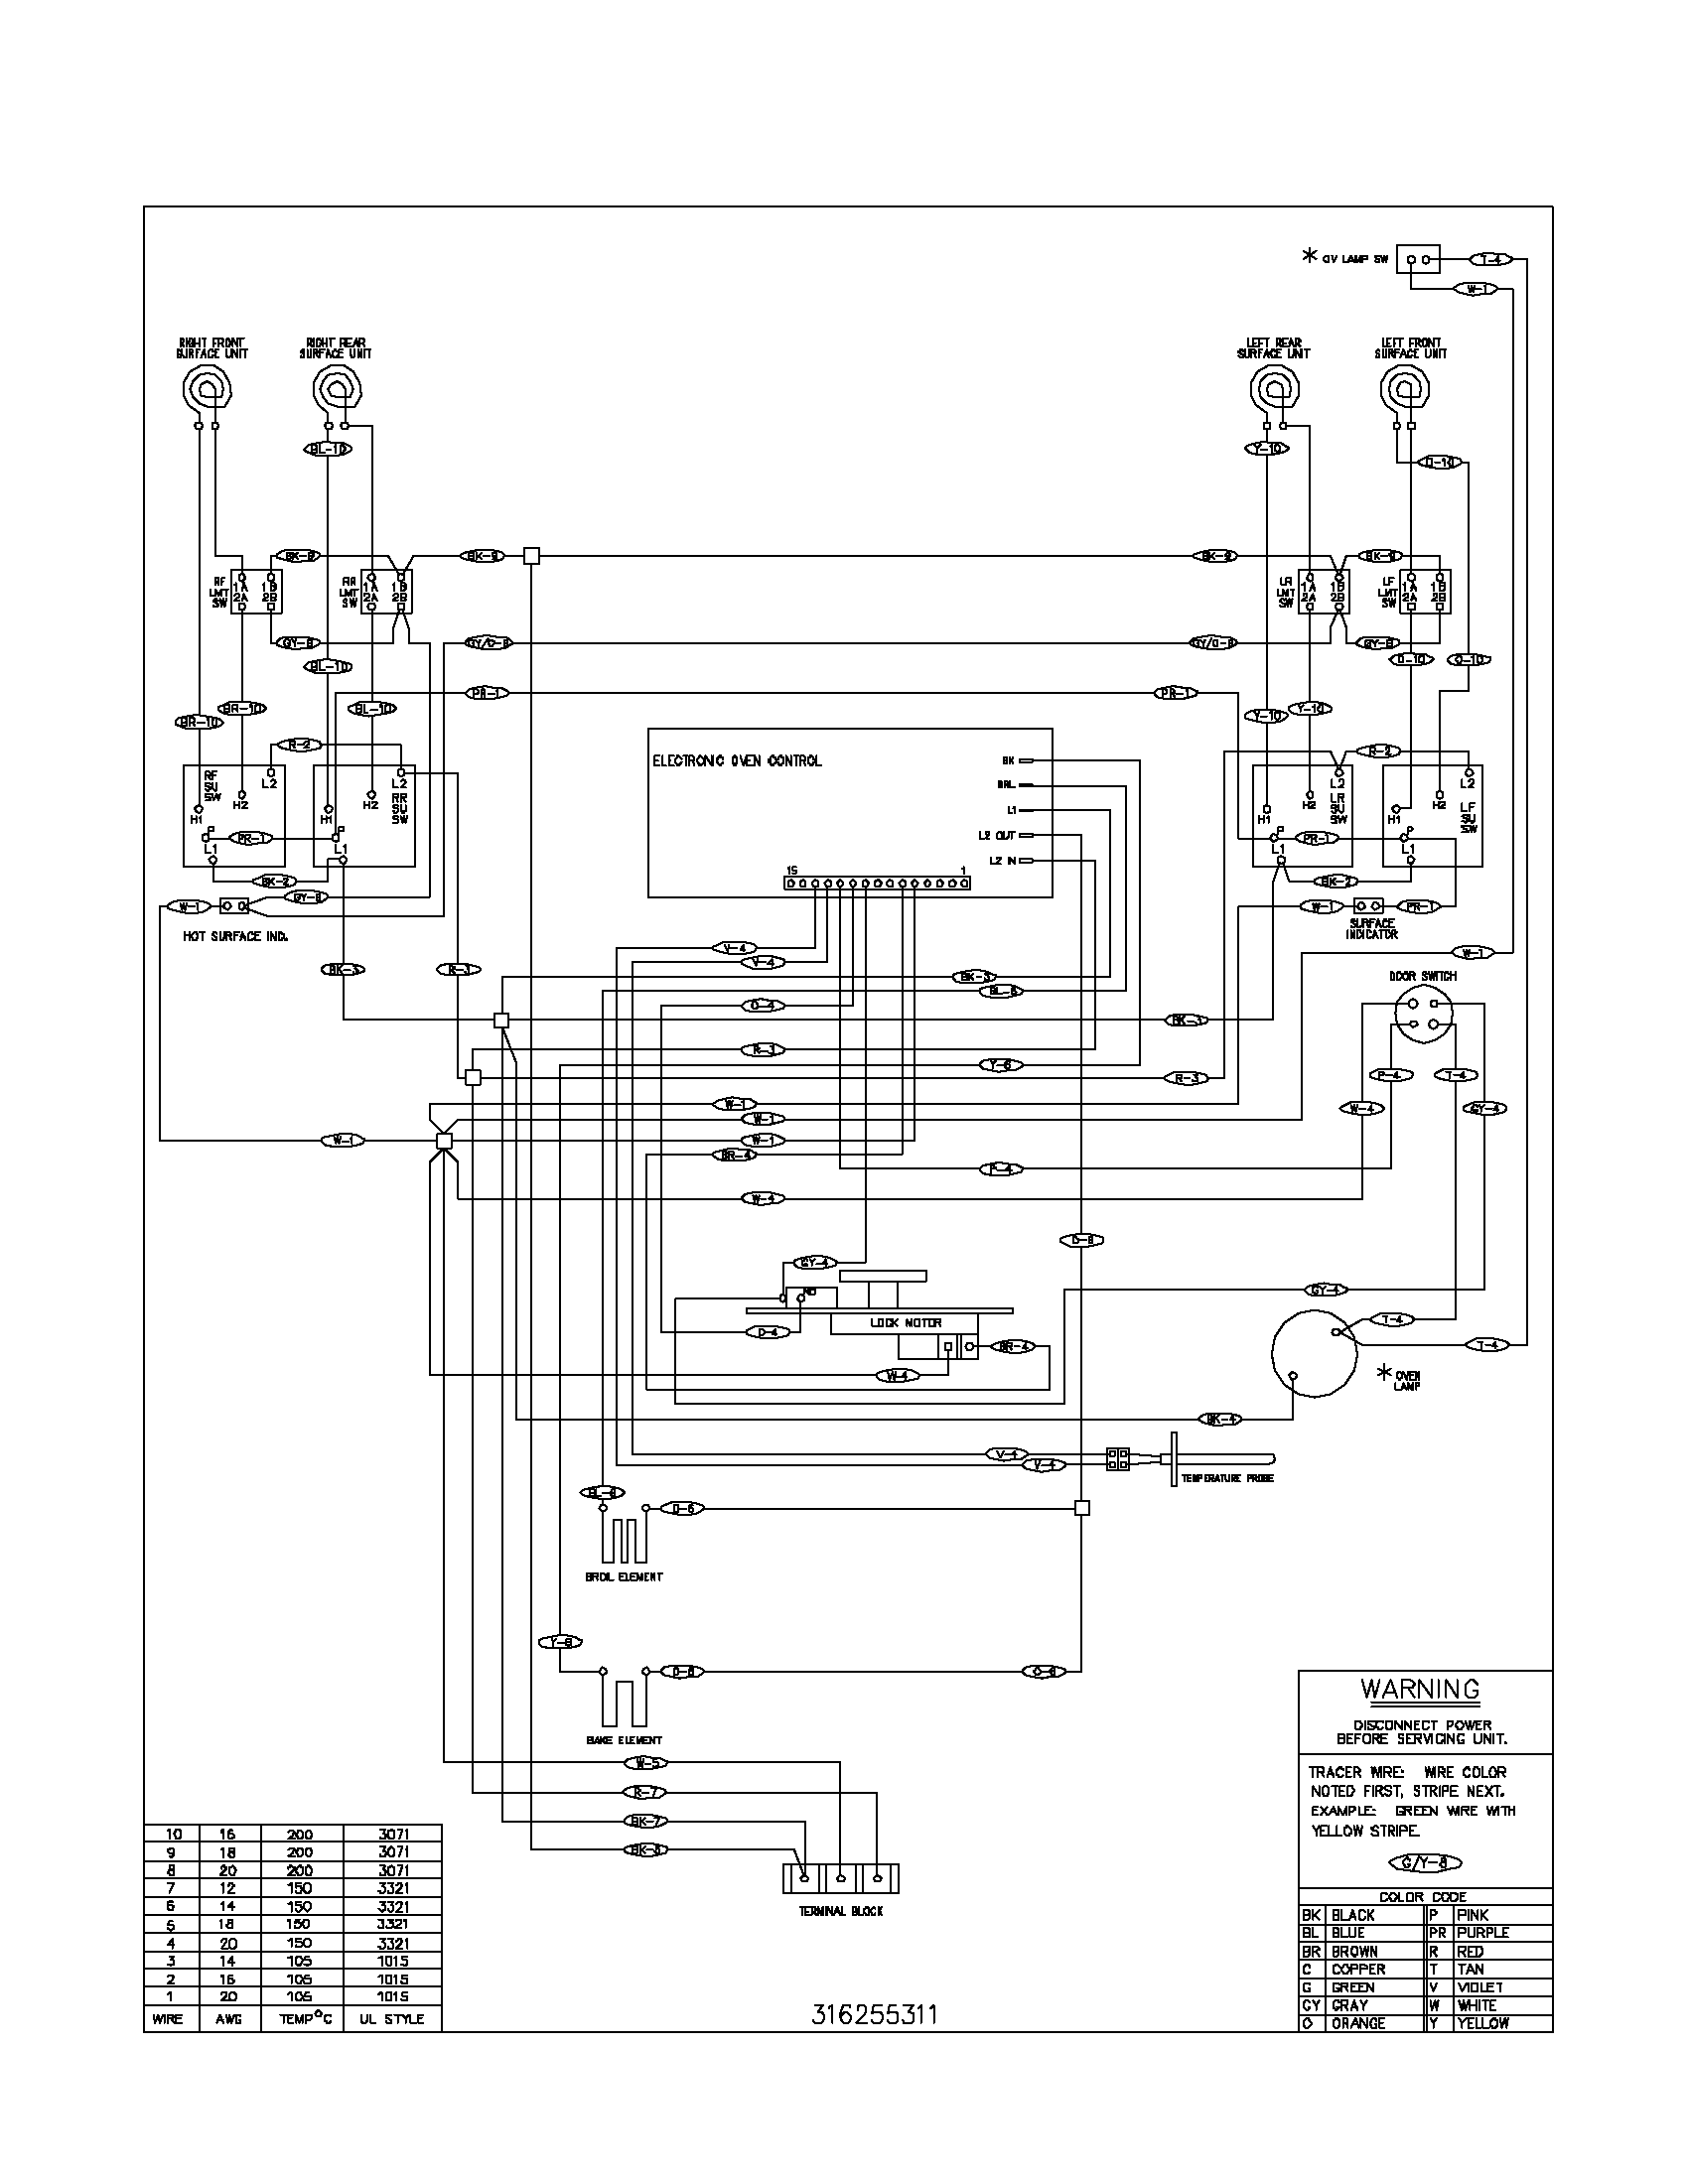 electric oven thermostat wiring diagram 39 wiring diagram images rh cita asia